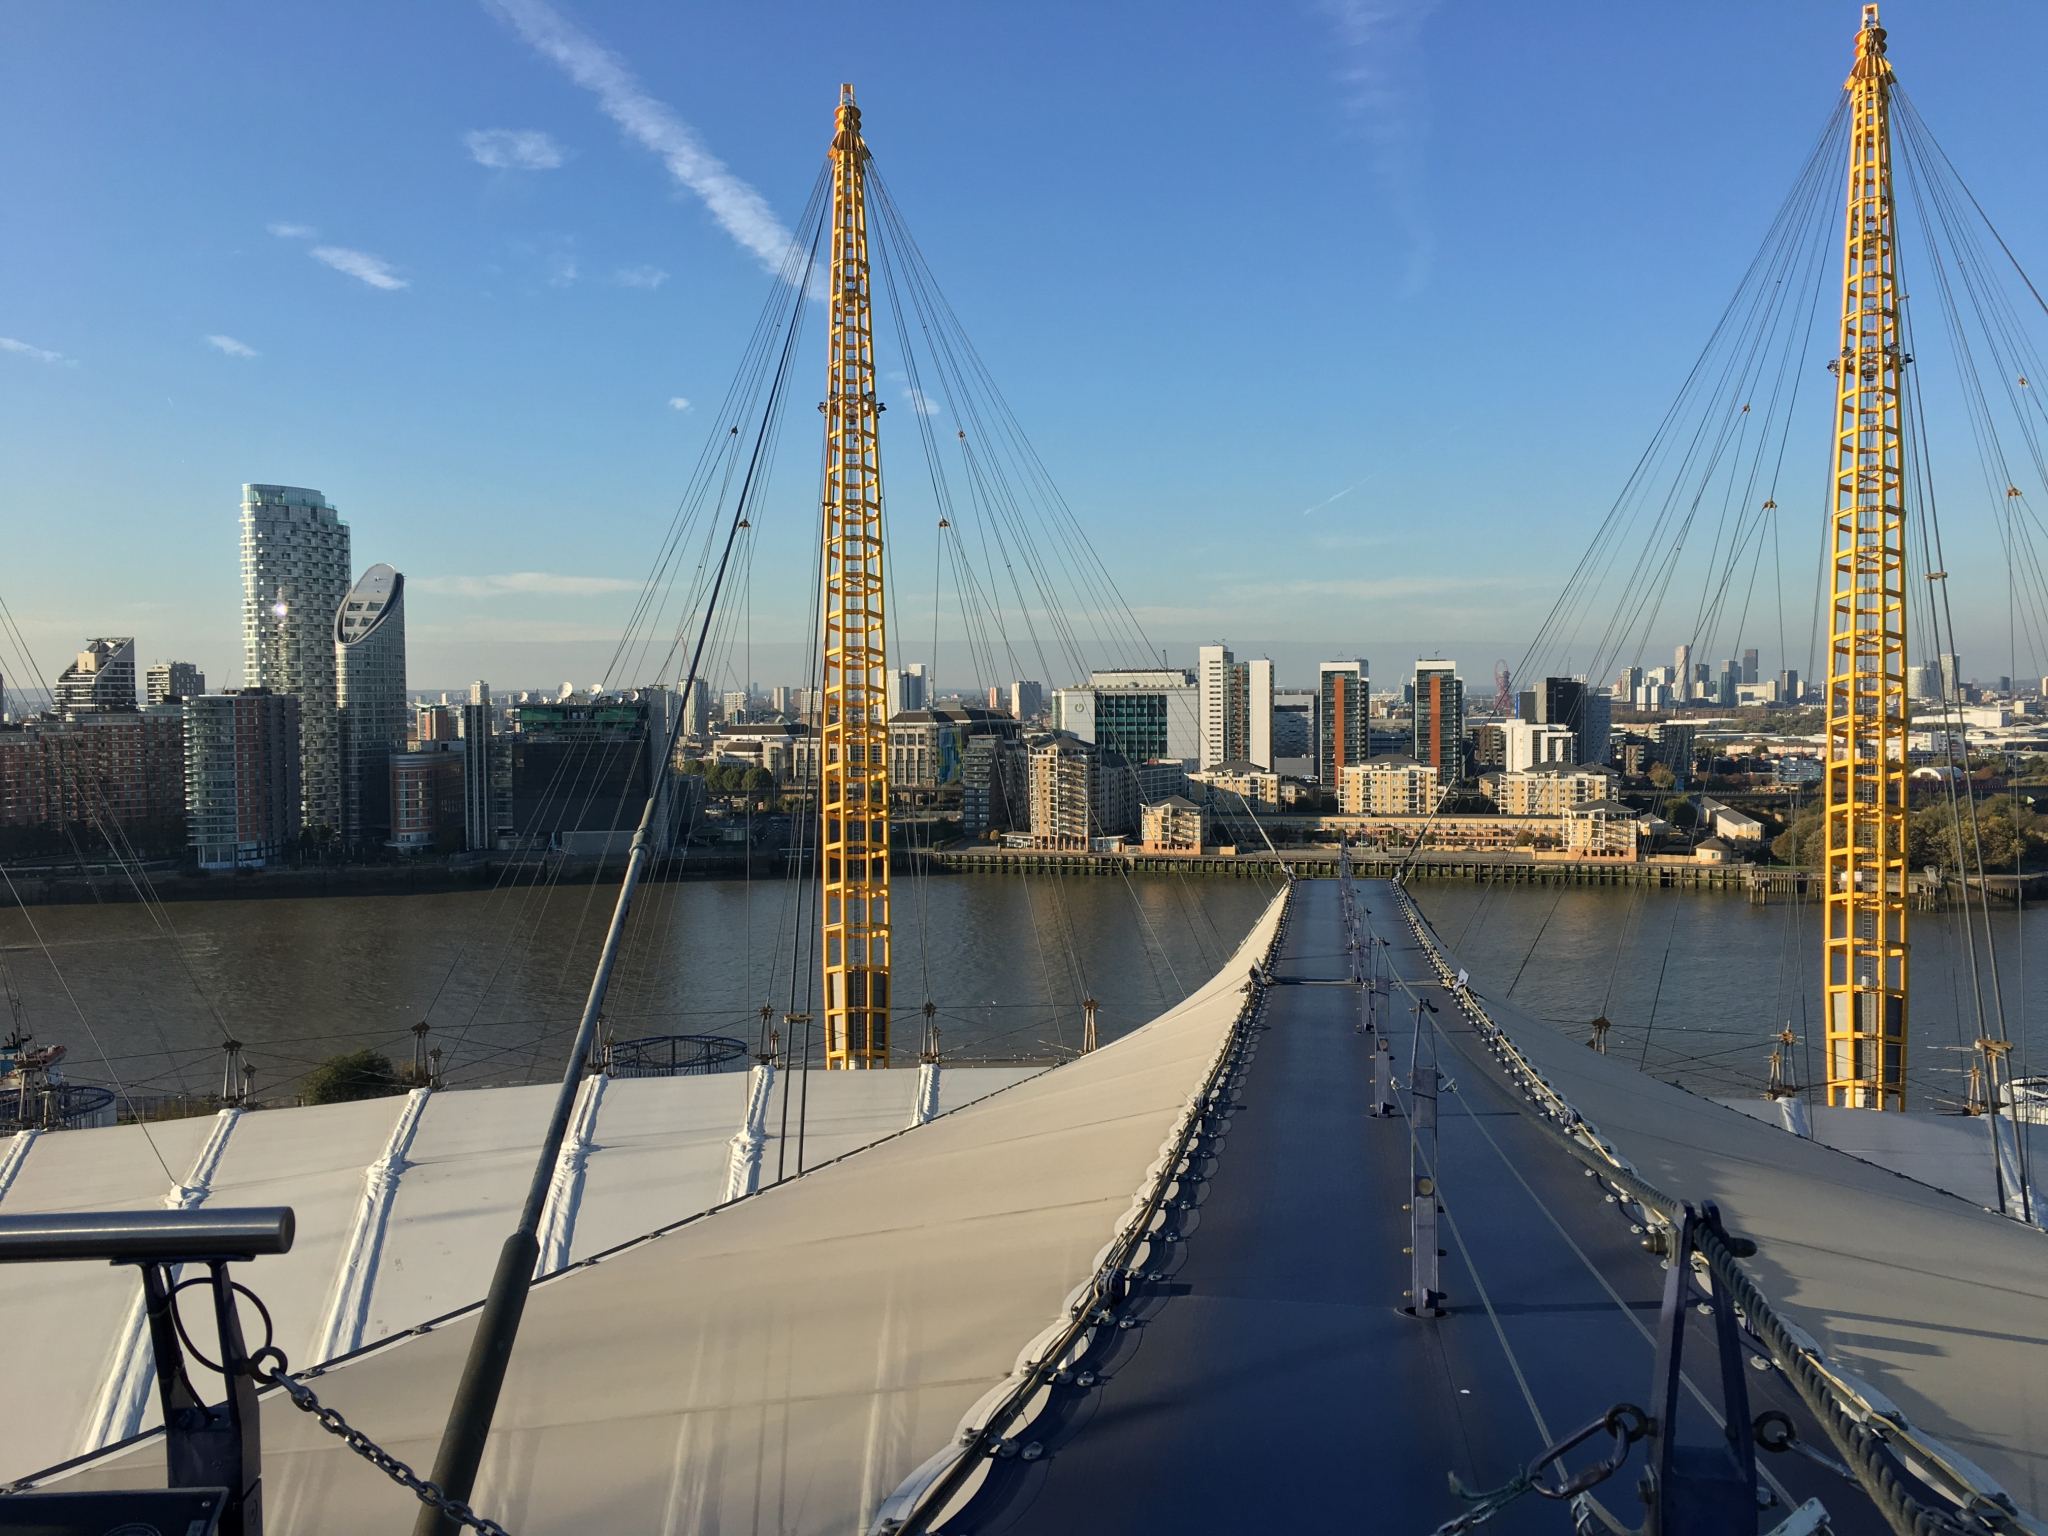 On top of the O2